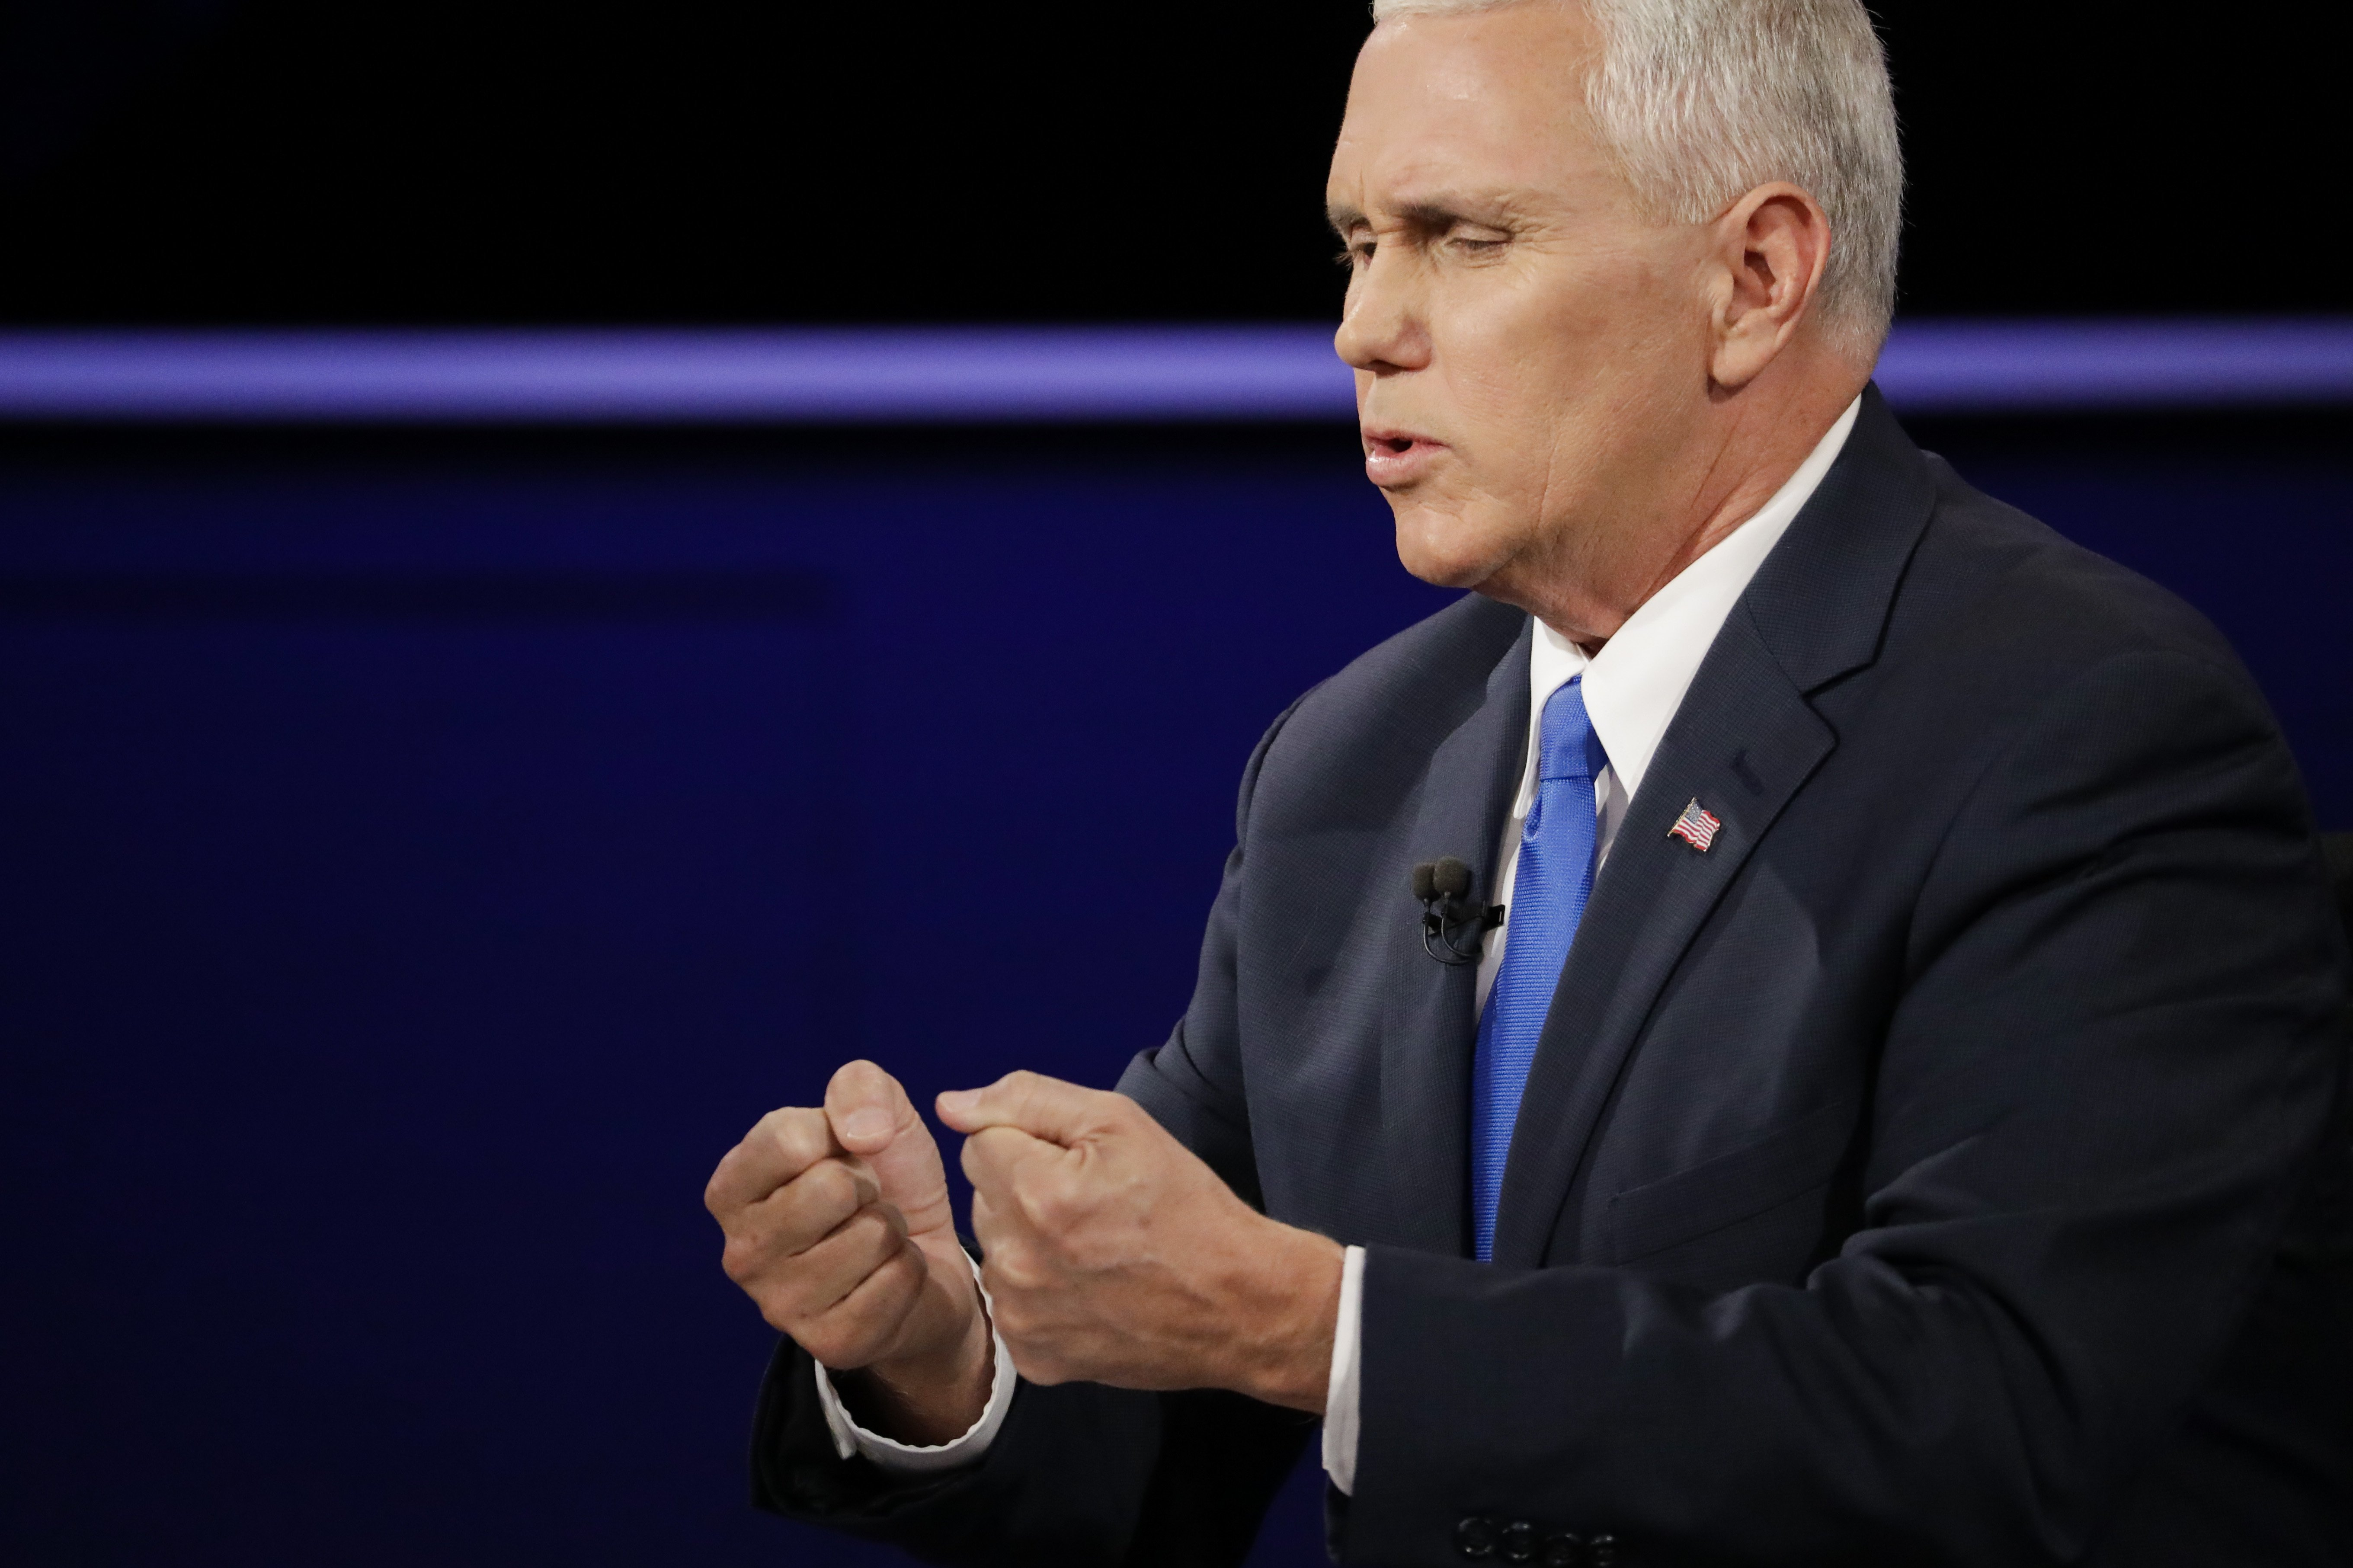 Republican vice-presidential nominee Gov. Mike Pence answers a question during the vice-presidential debate at Longwood University in Farmville, Va., Tuesday, Oct. 4, 2016.